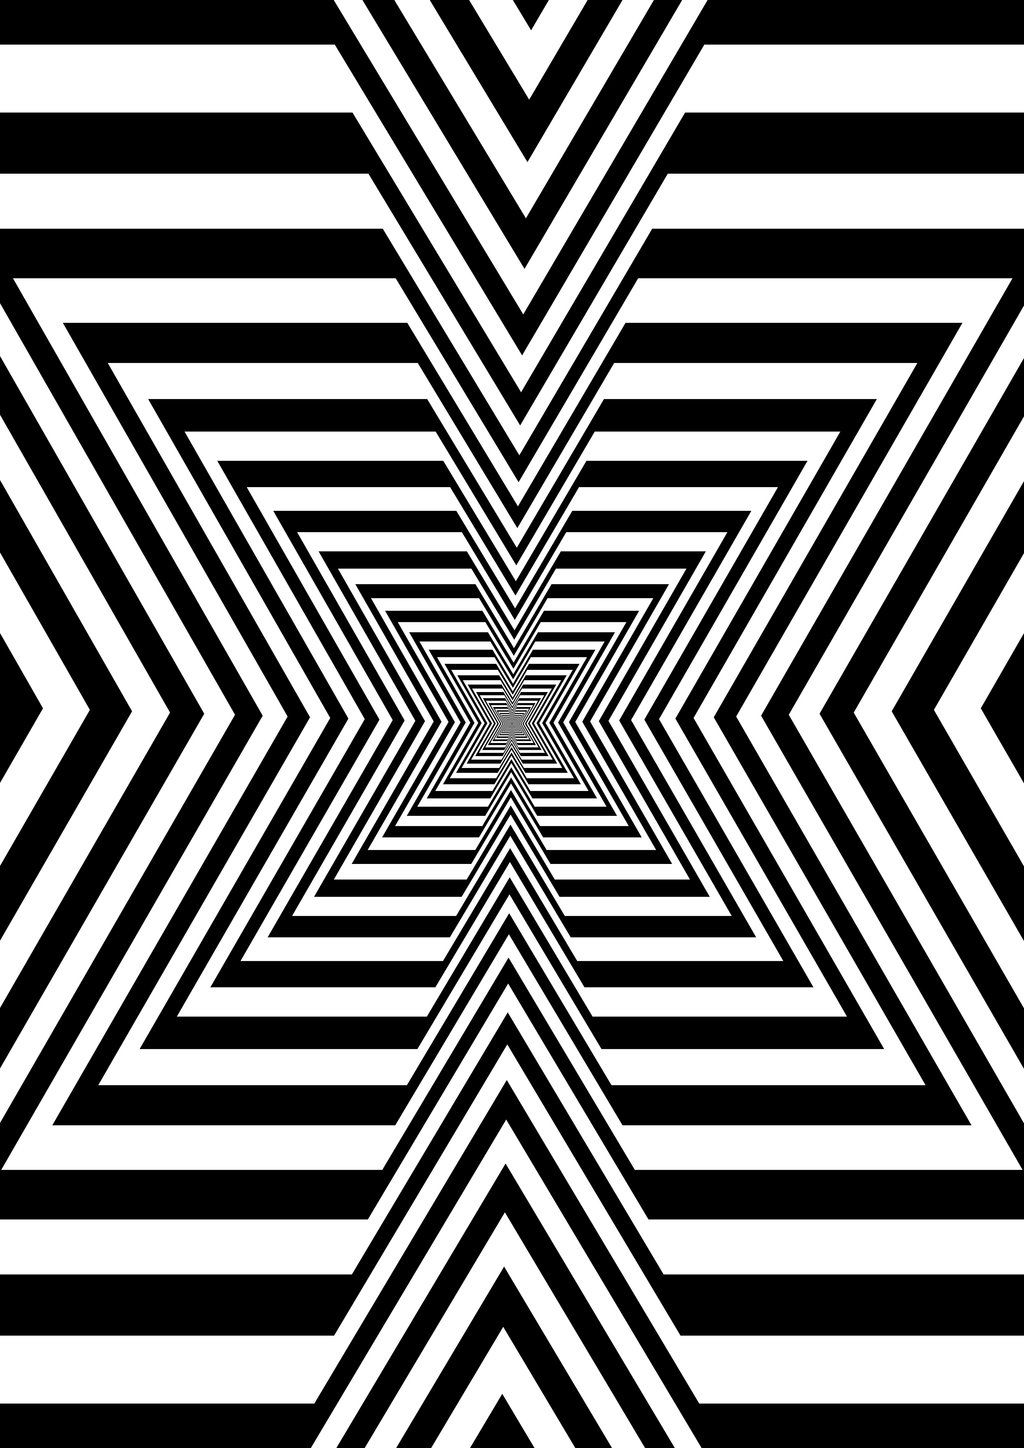 Black And White Design Black And White Design  Google Search  __  Pinterest  Geometry